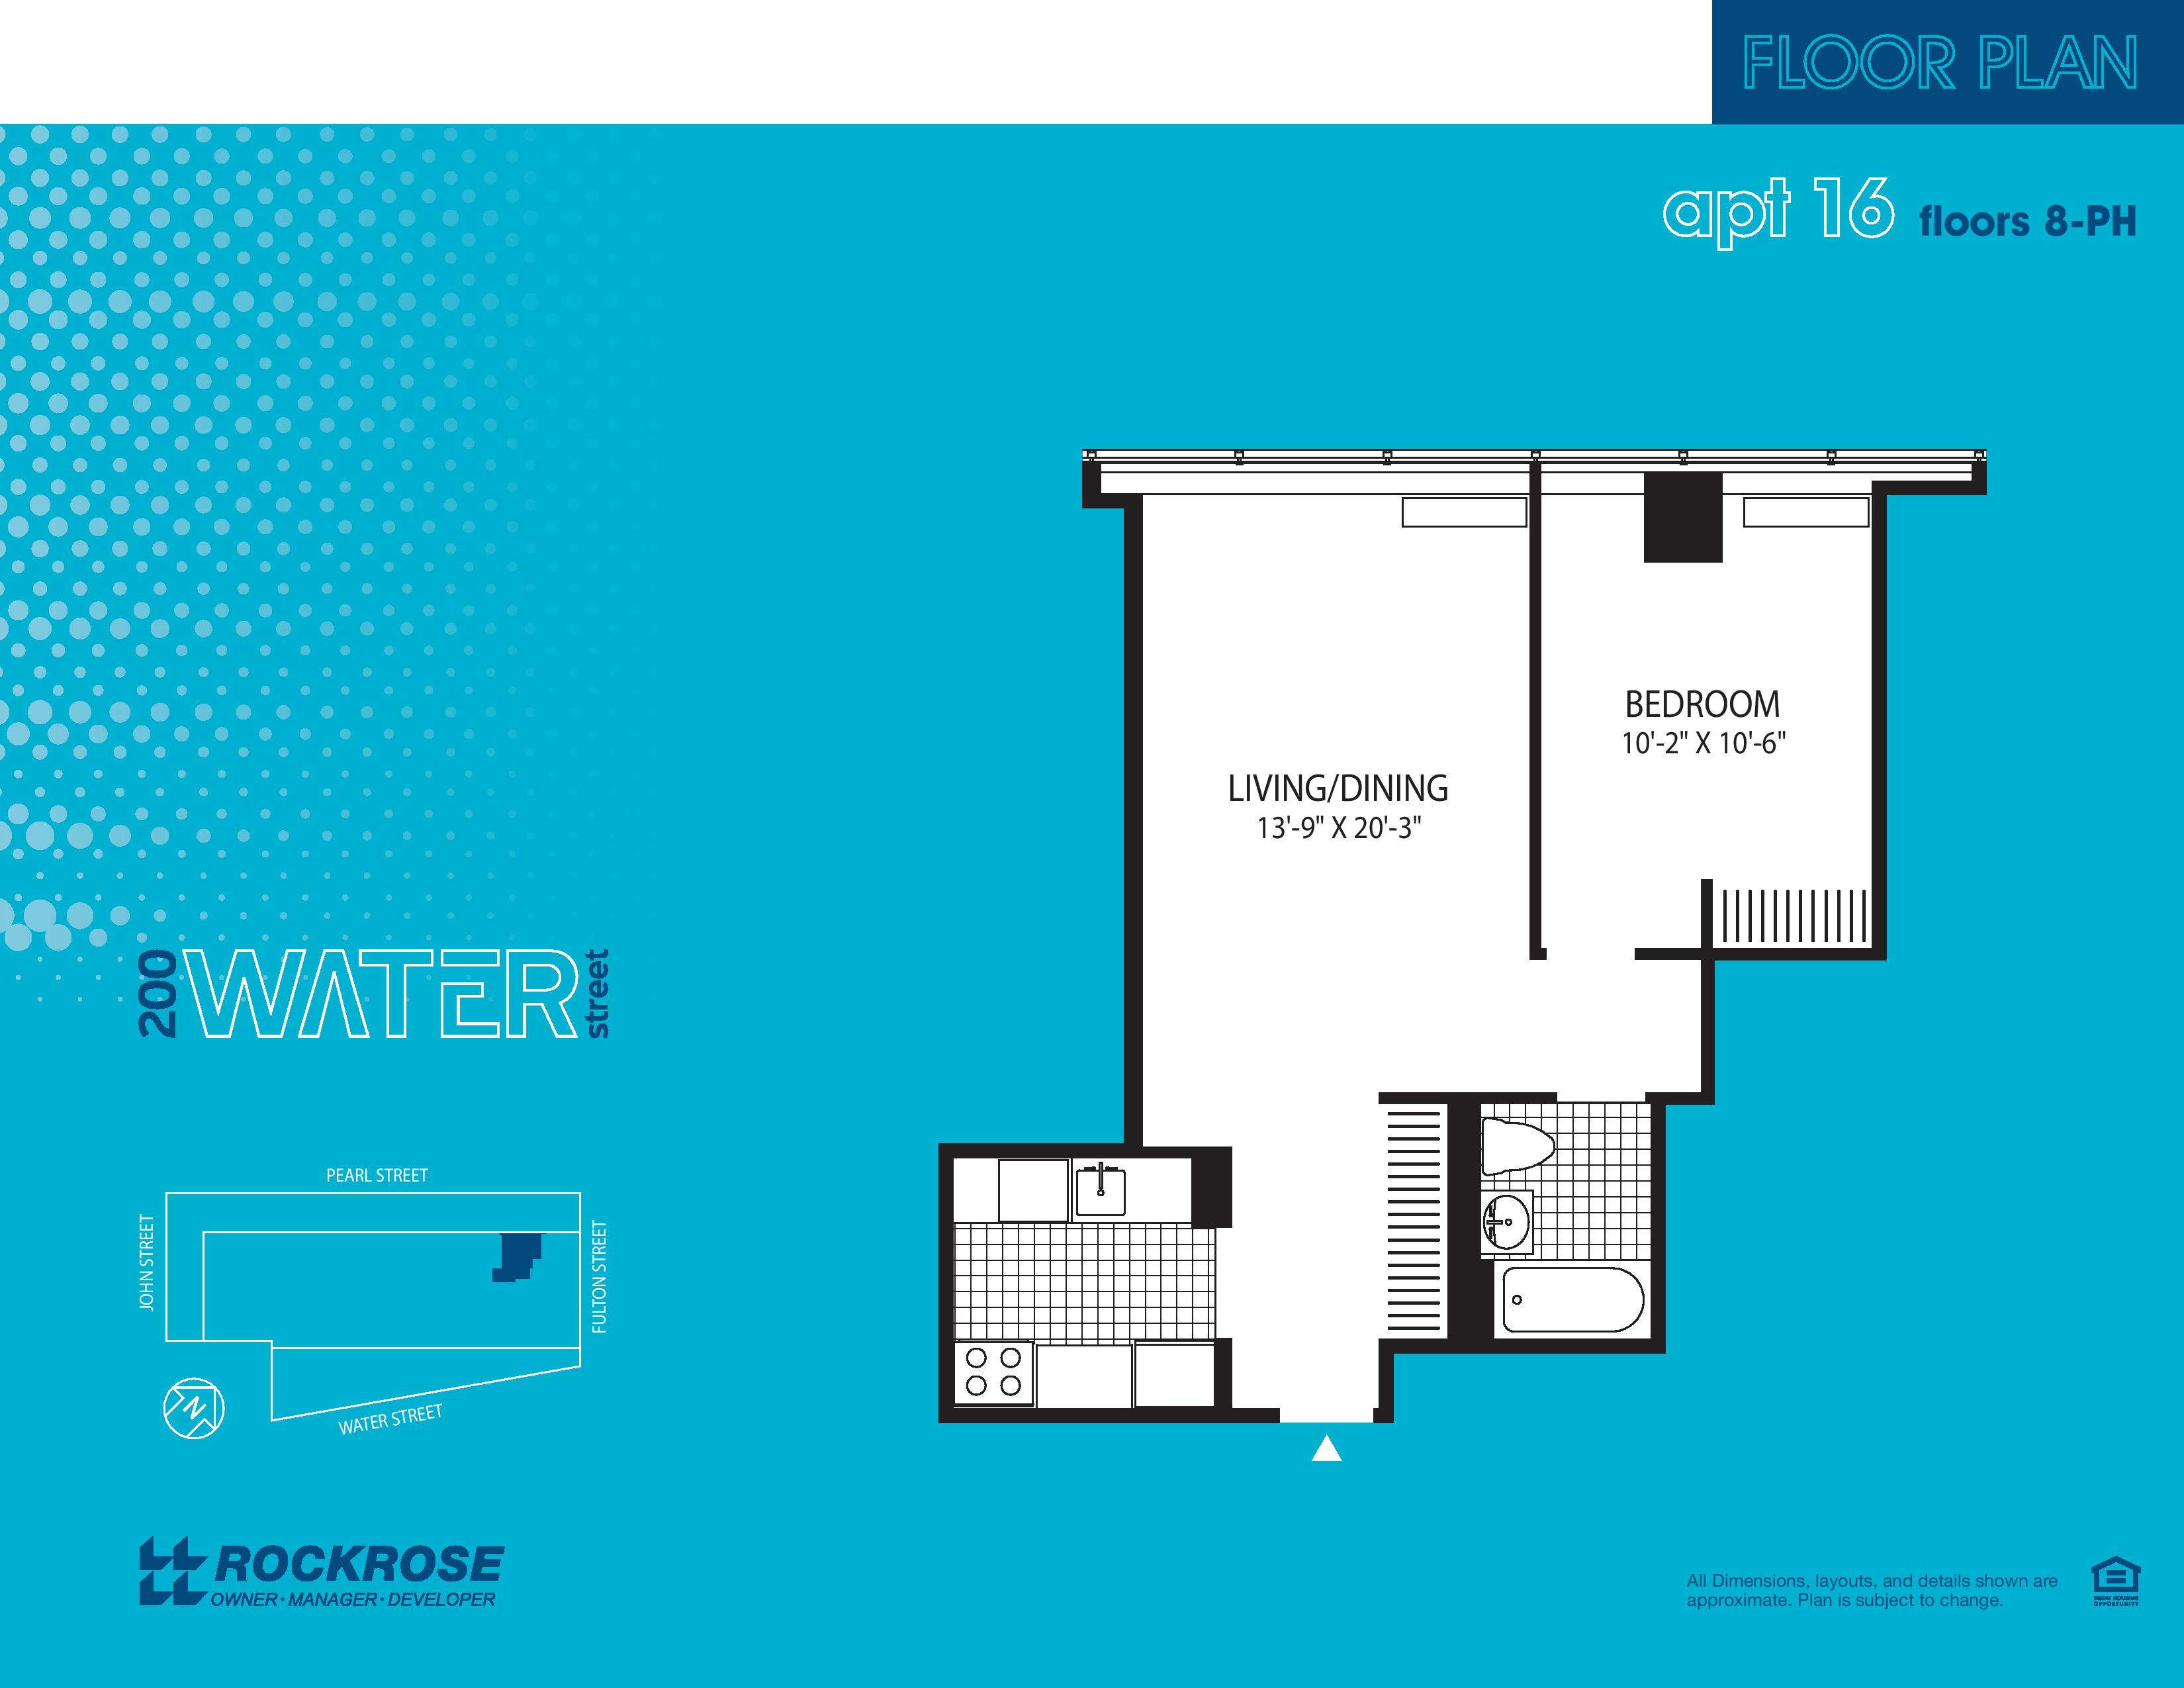 200 Water Street Apartment Floor Plans - New York NY